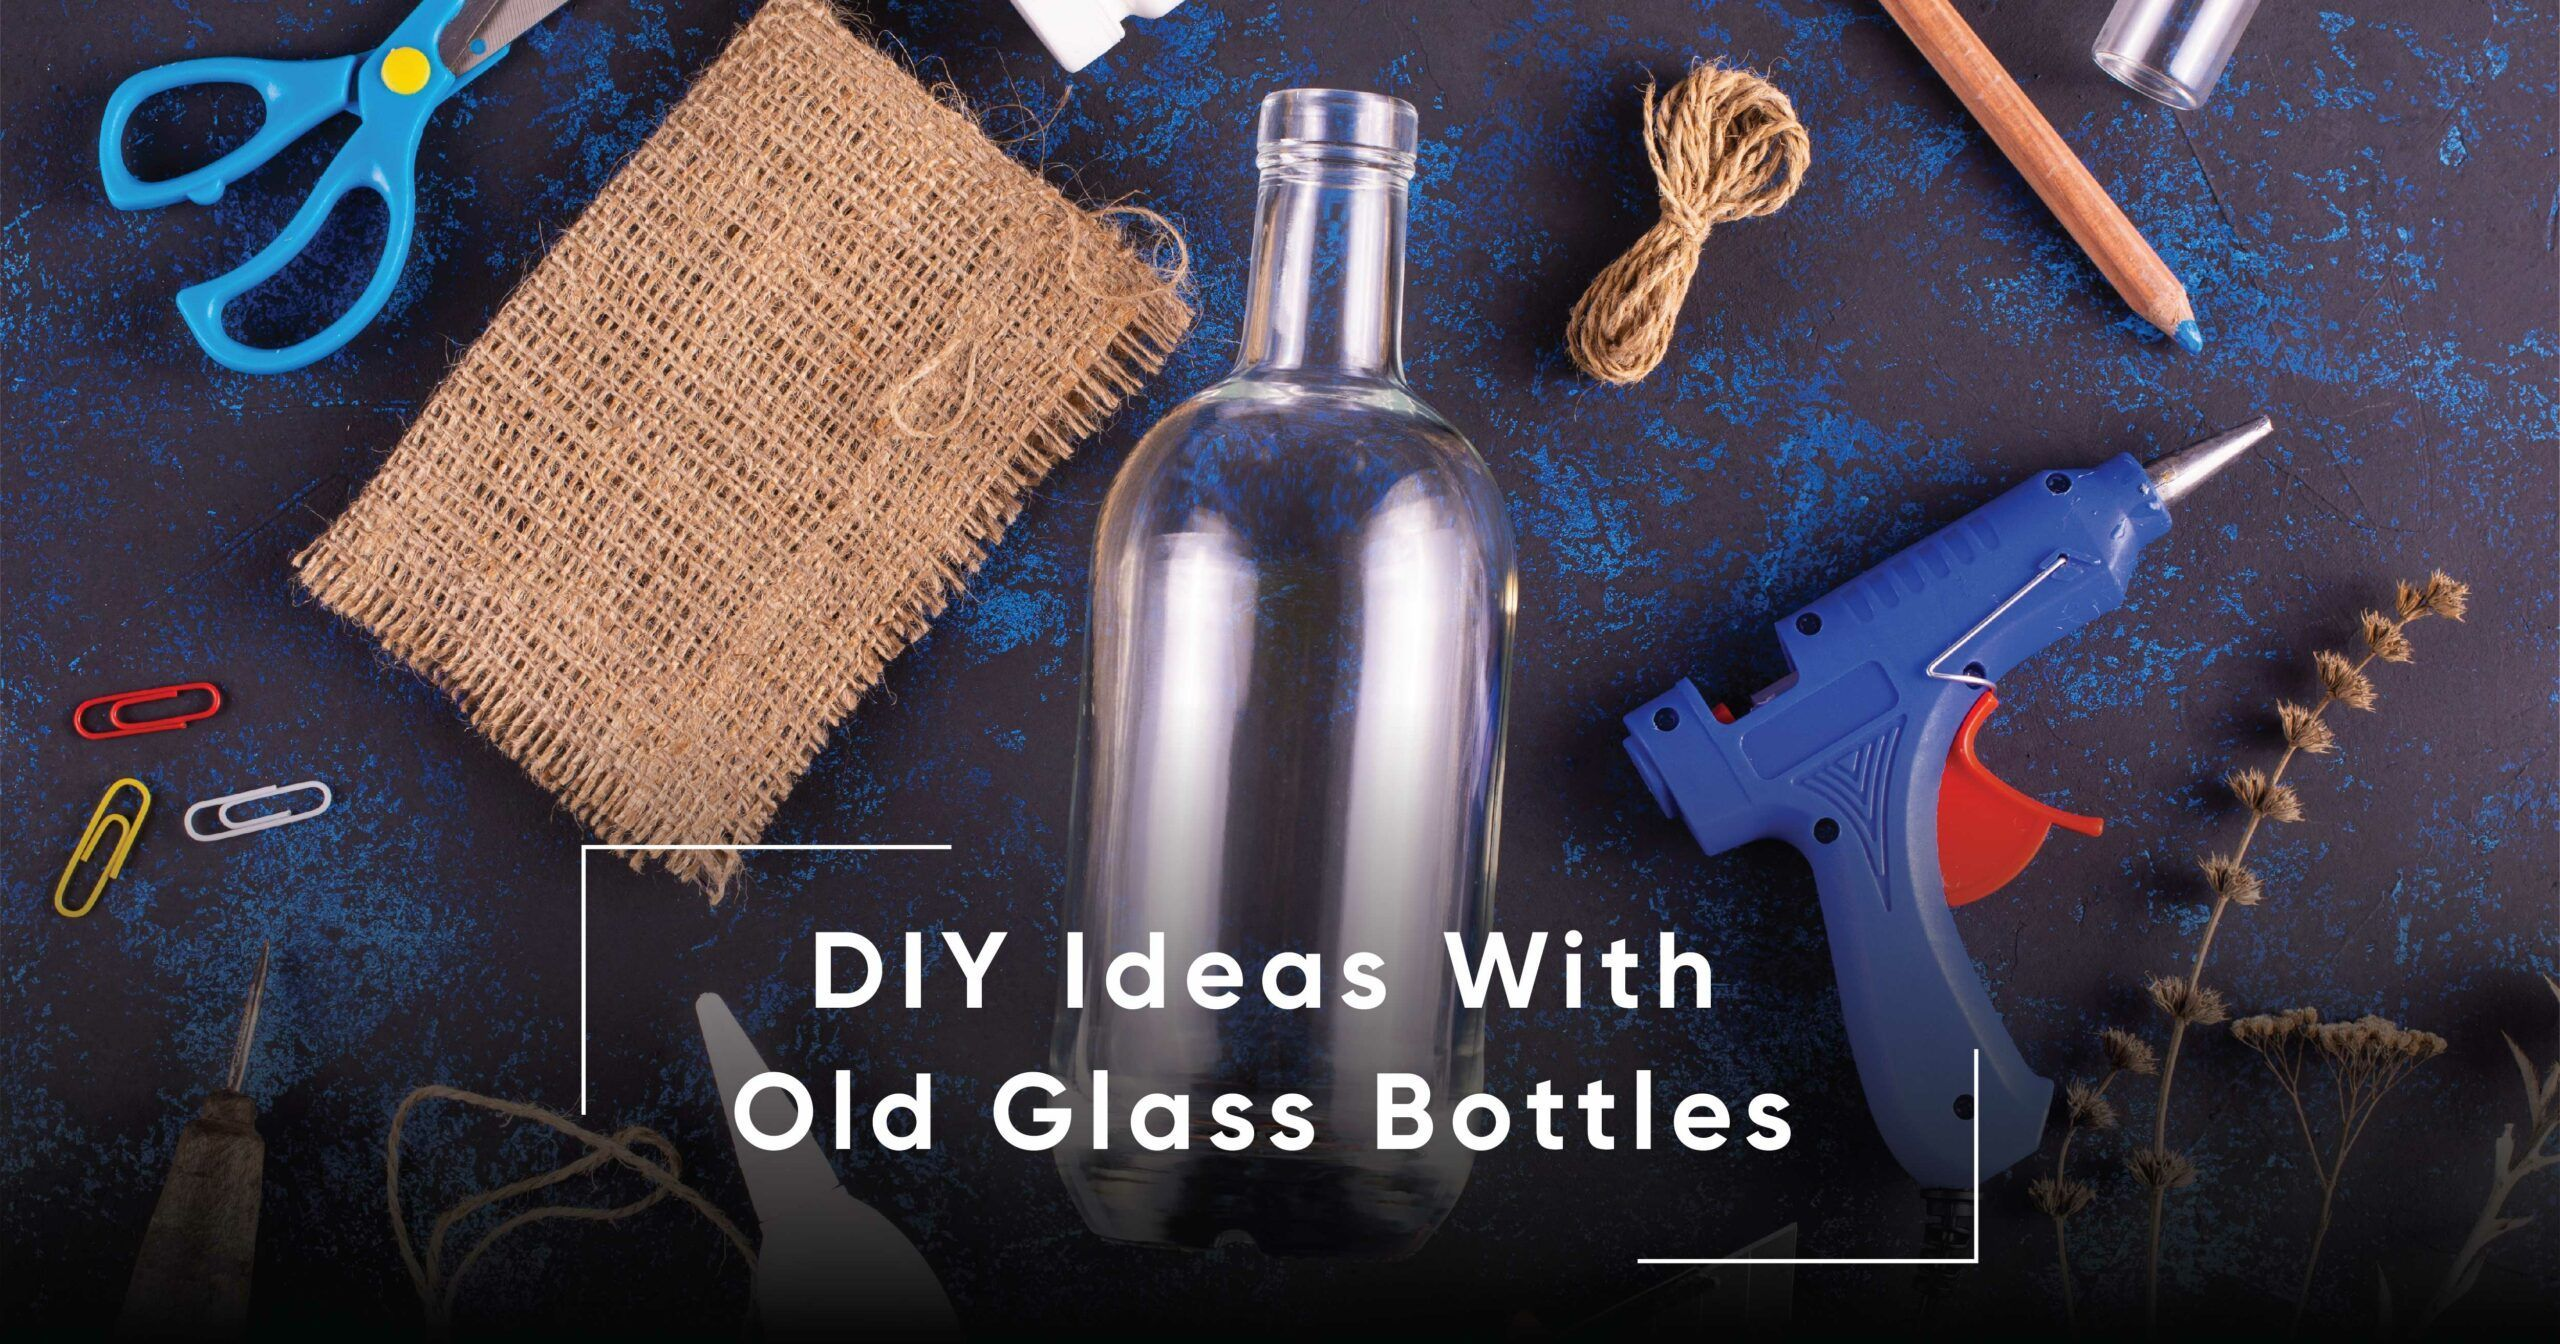 10 Easy DIY Ideas With Glass Bottles That Will Brighten Your Day